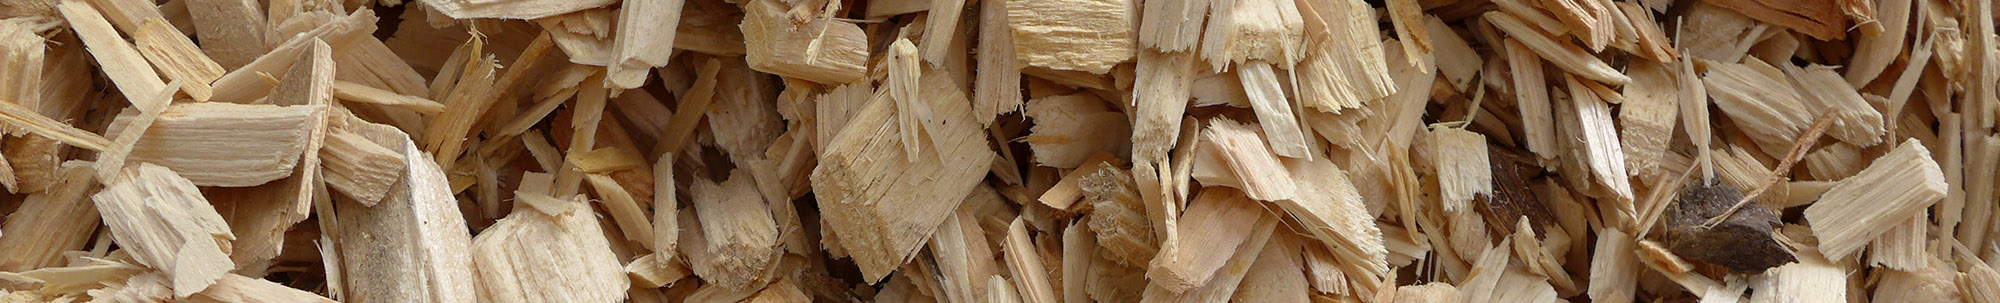 Biomass and Co-Products